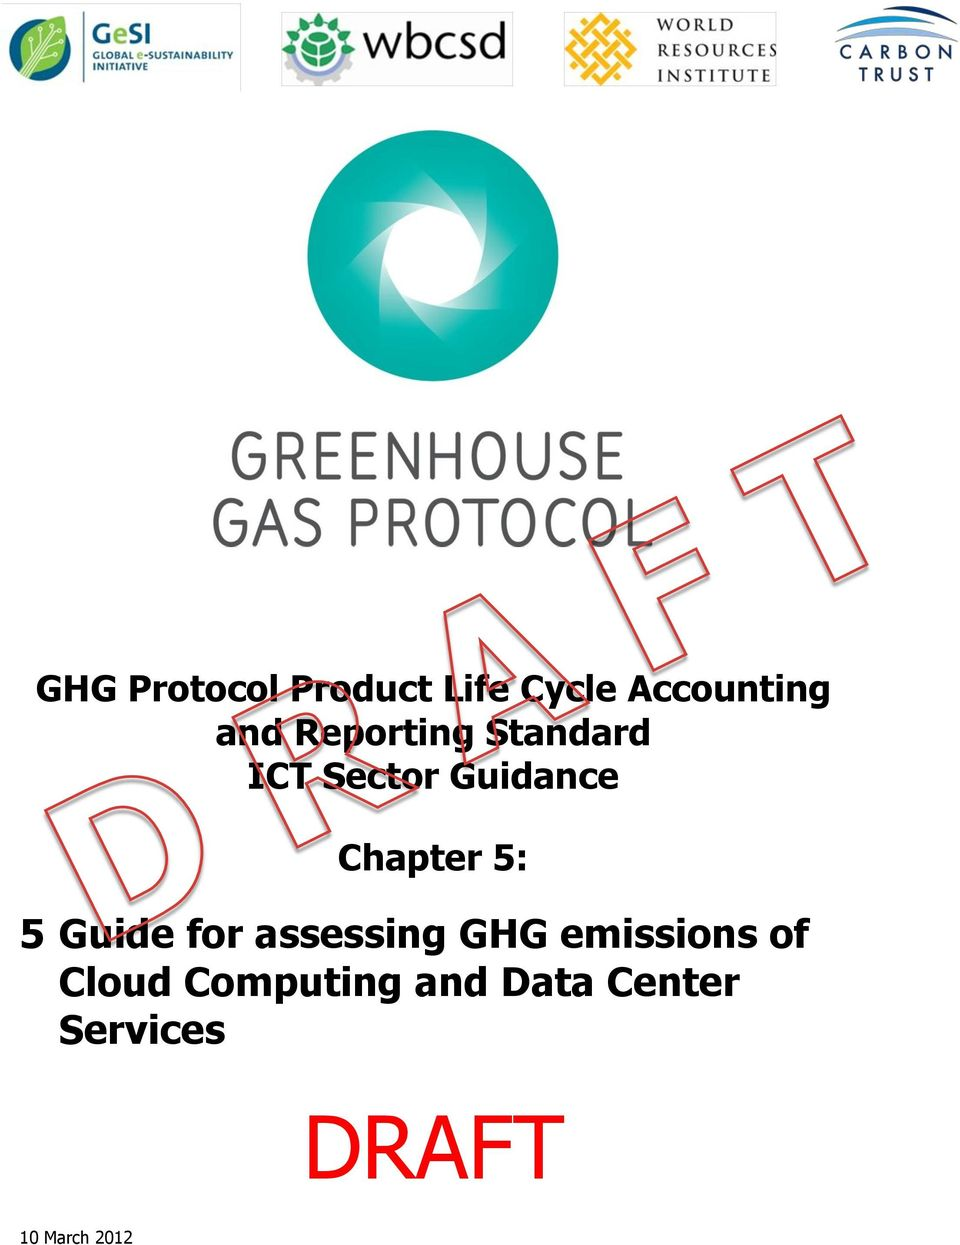 : Guide for assessing GHG emissions of Cloud